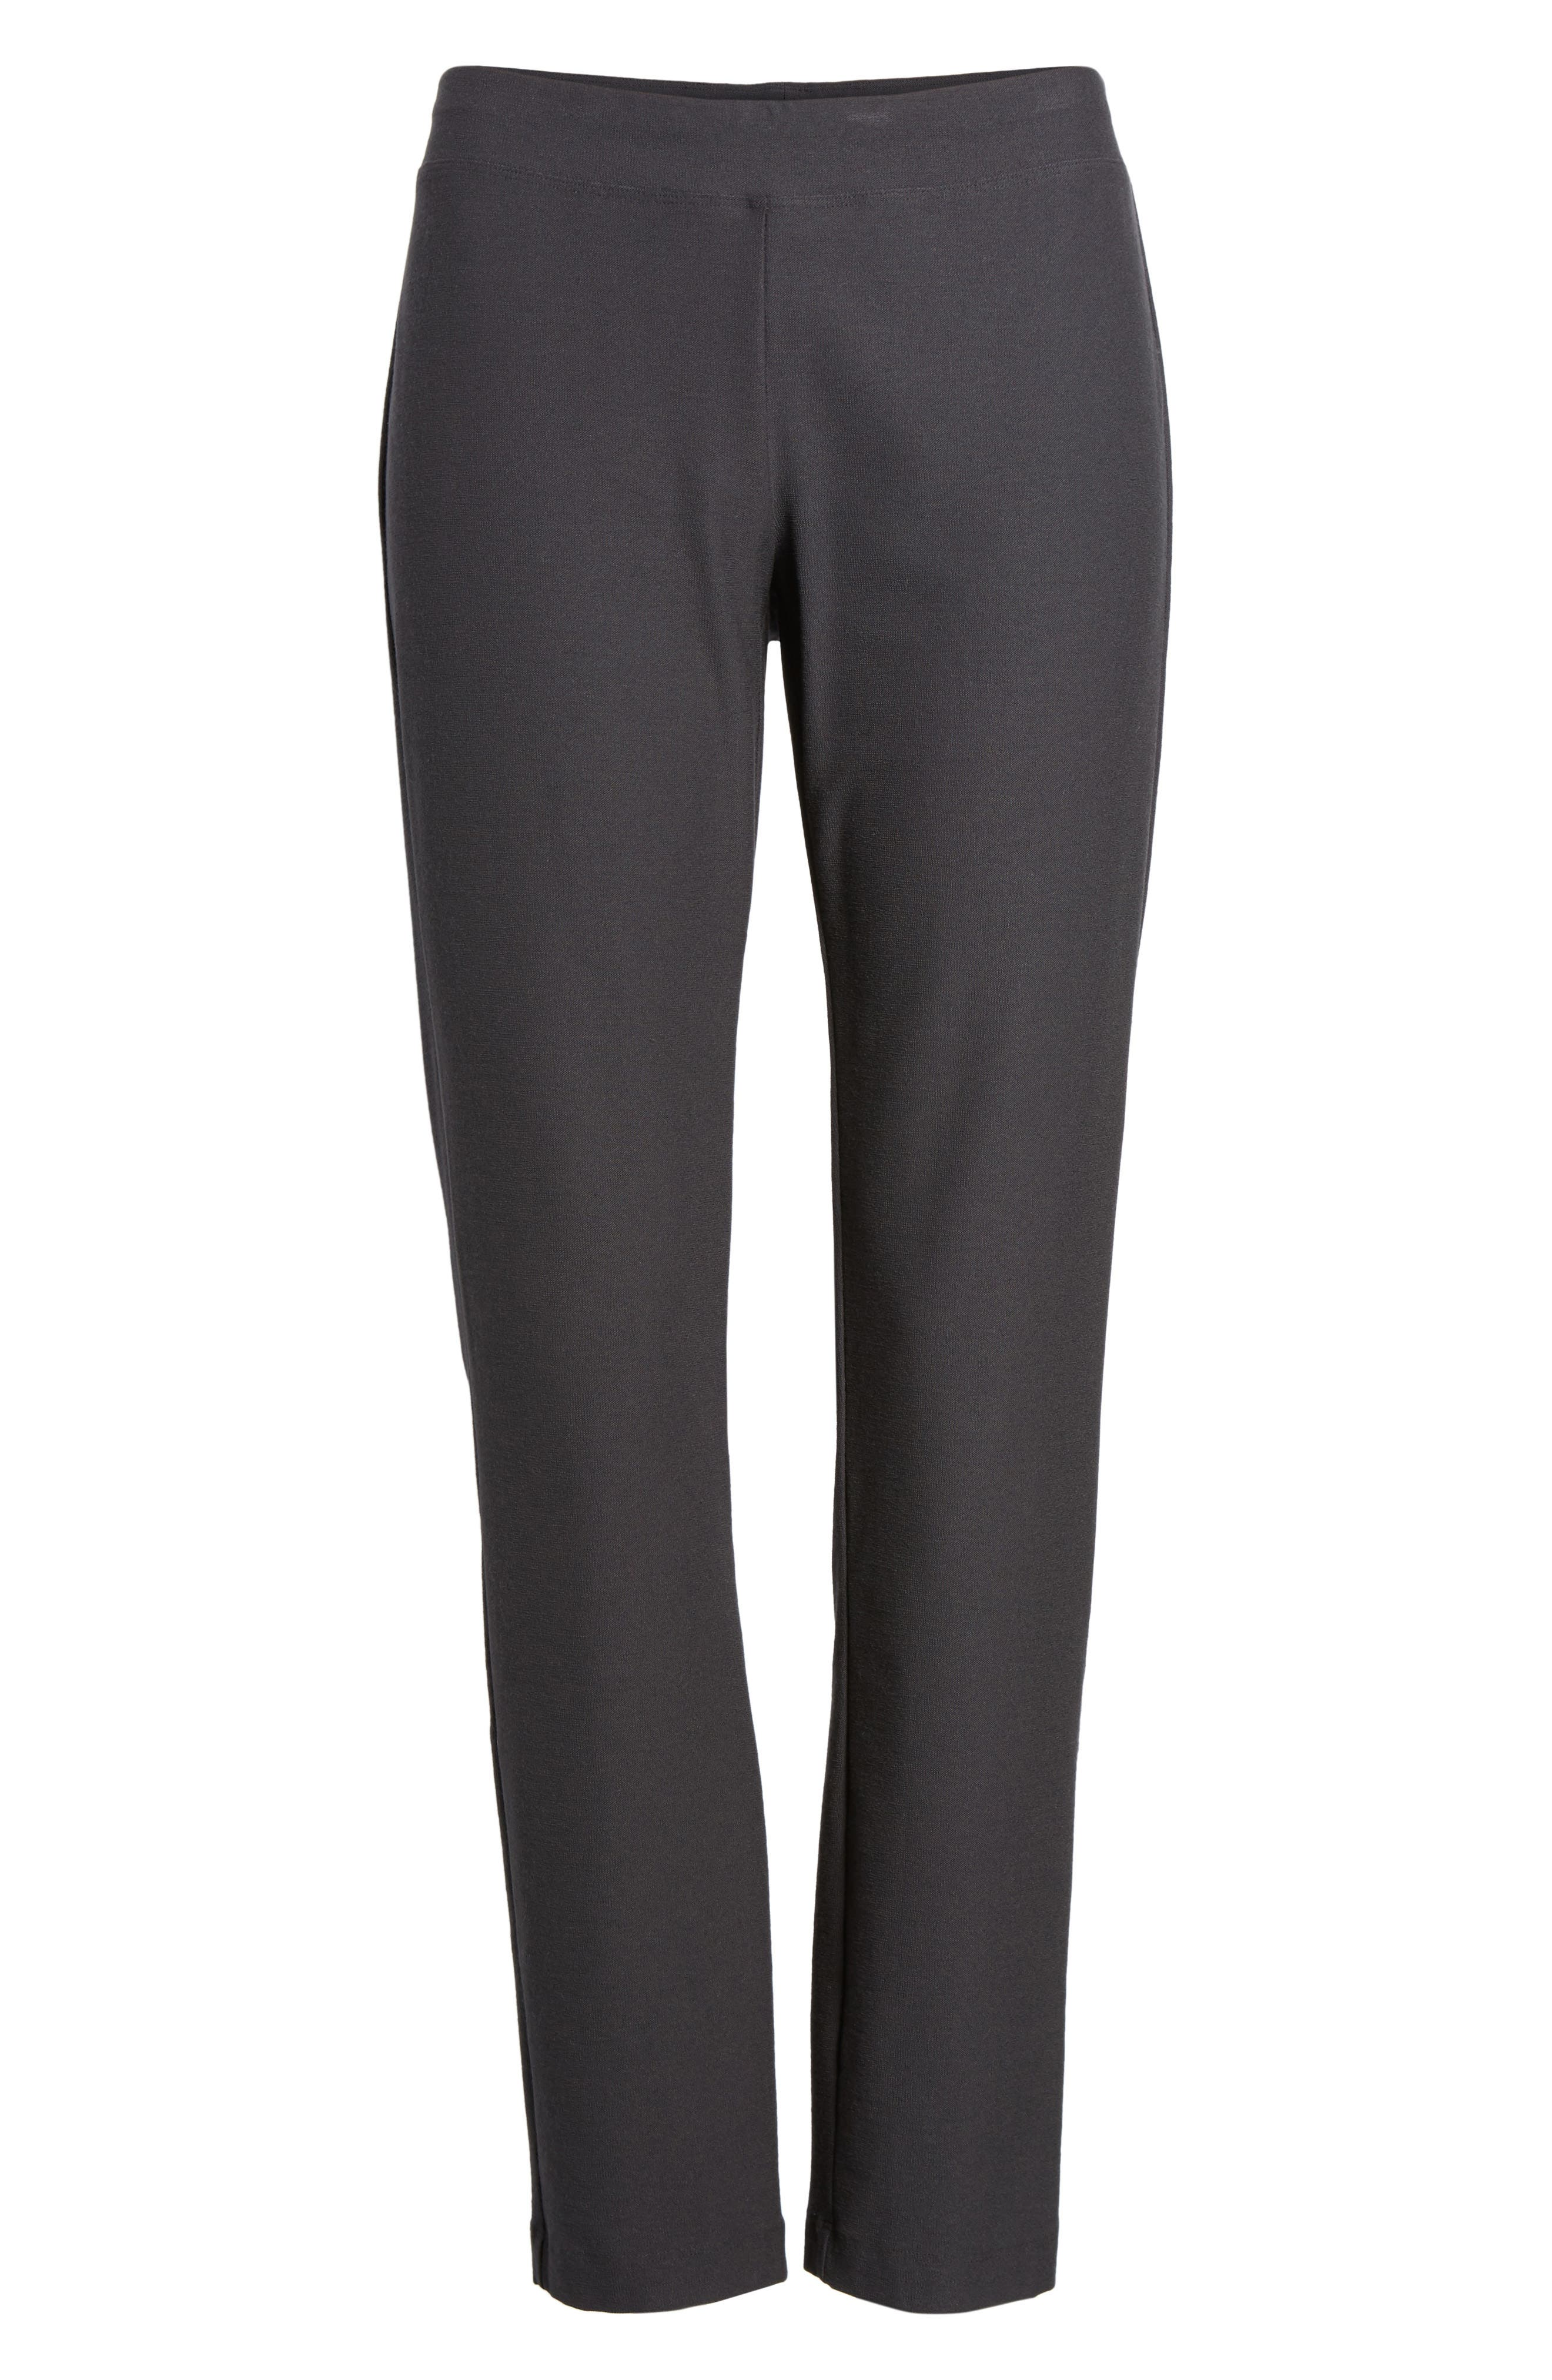 EILEEN FISHER, Stretch Crepe Ankle Pants, Alternate thumbnail 7, color, GRAPHITE